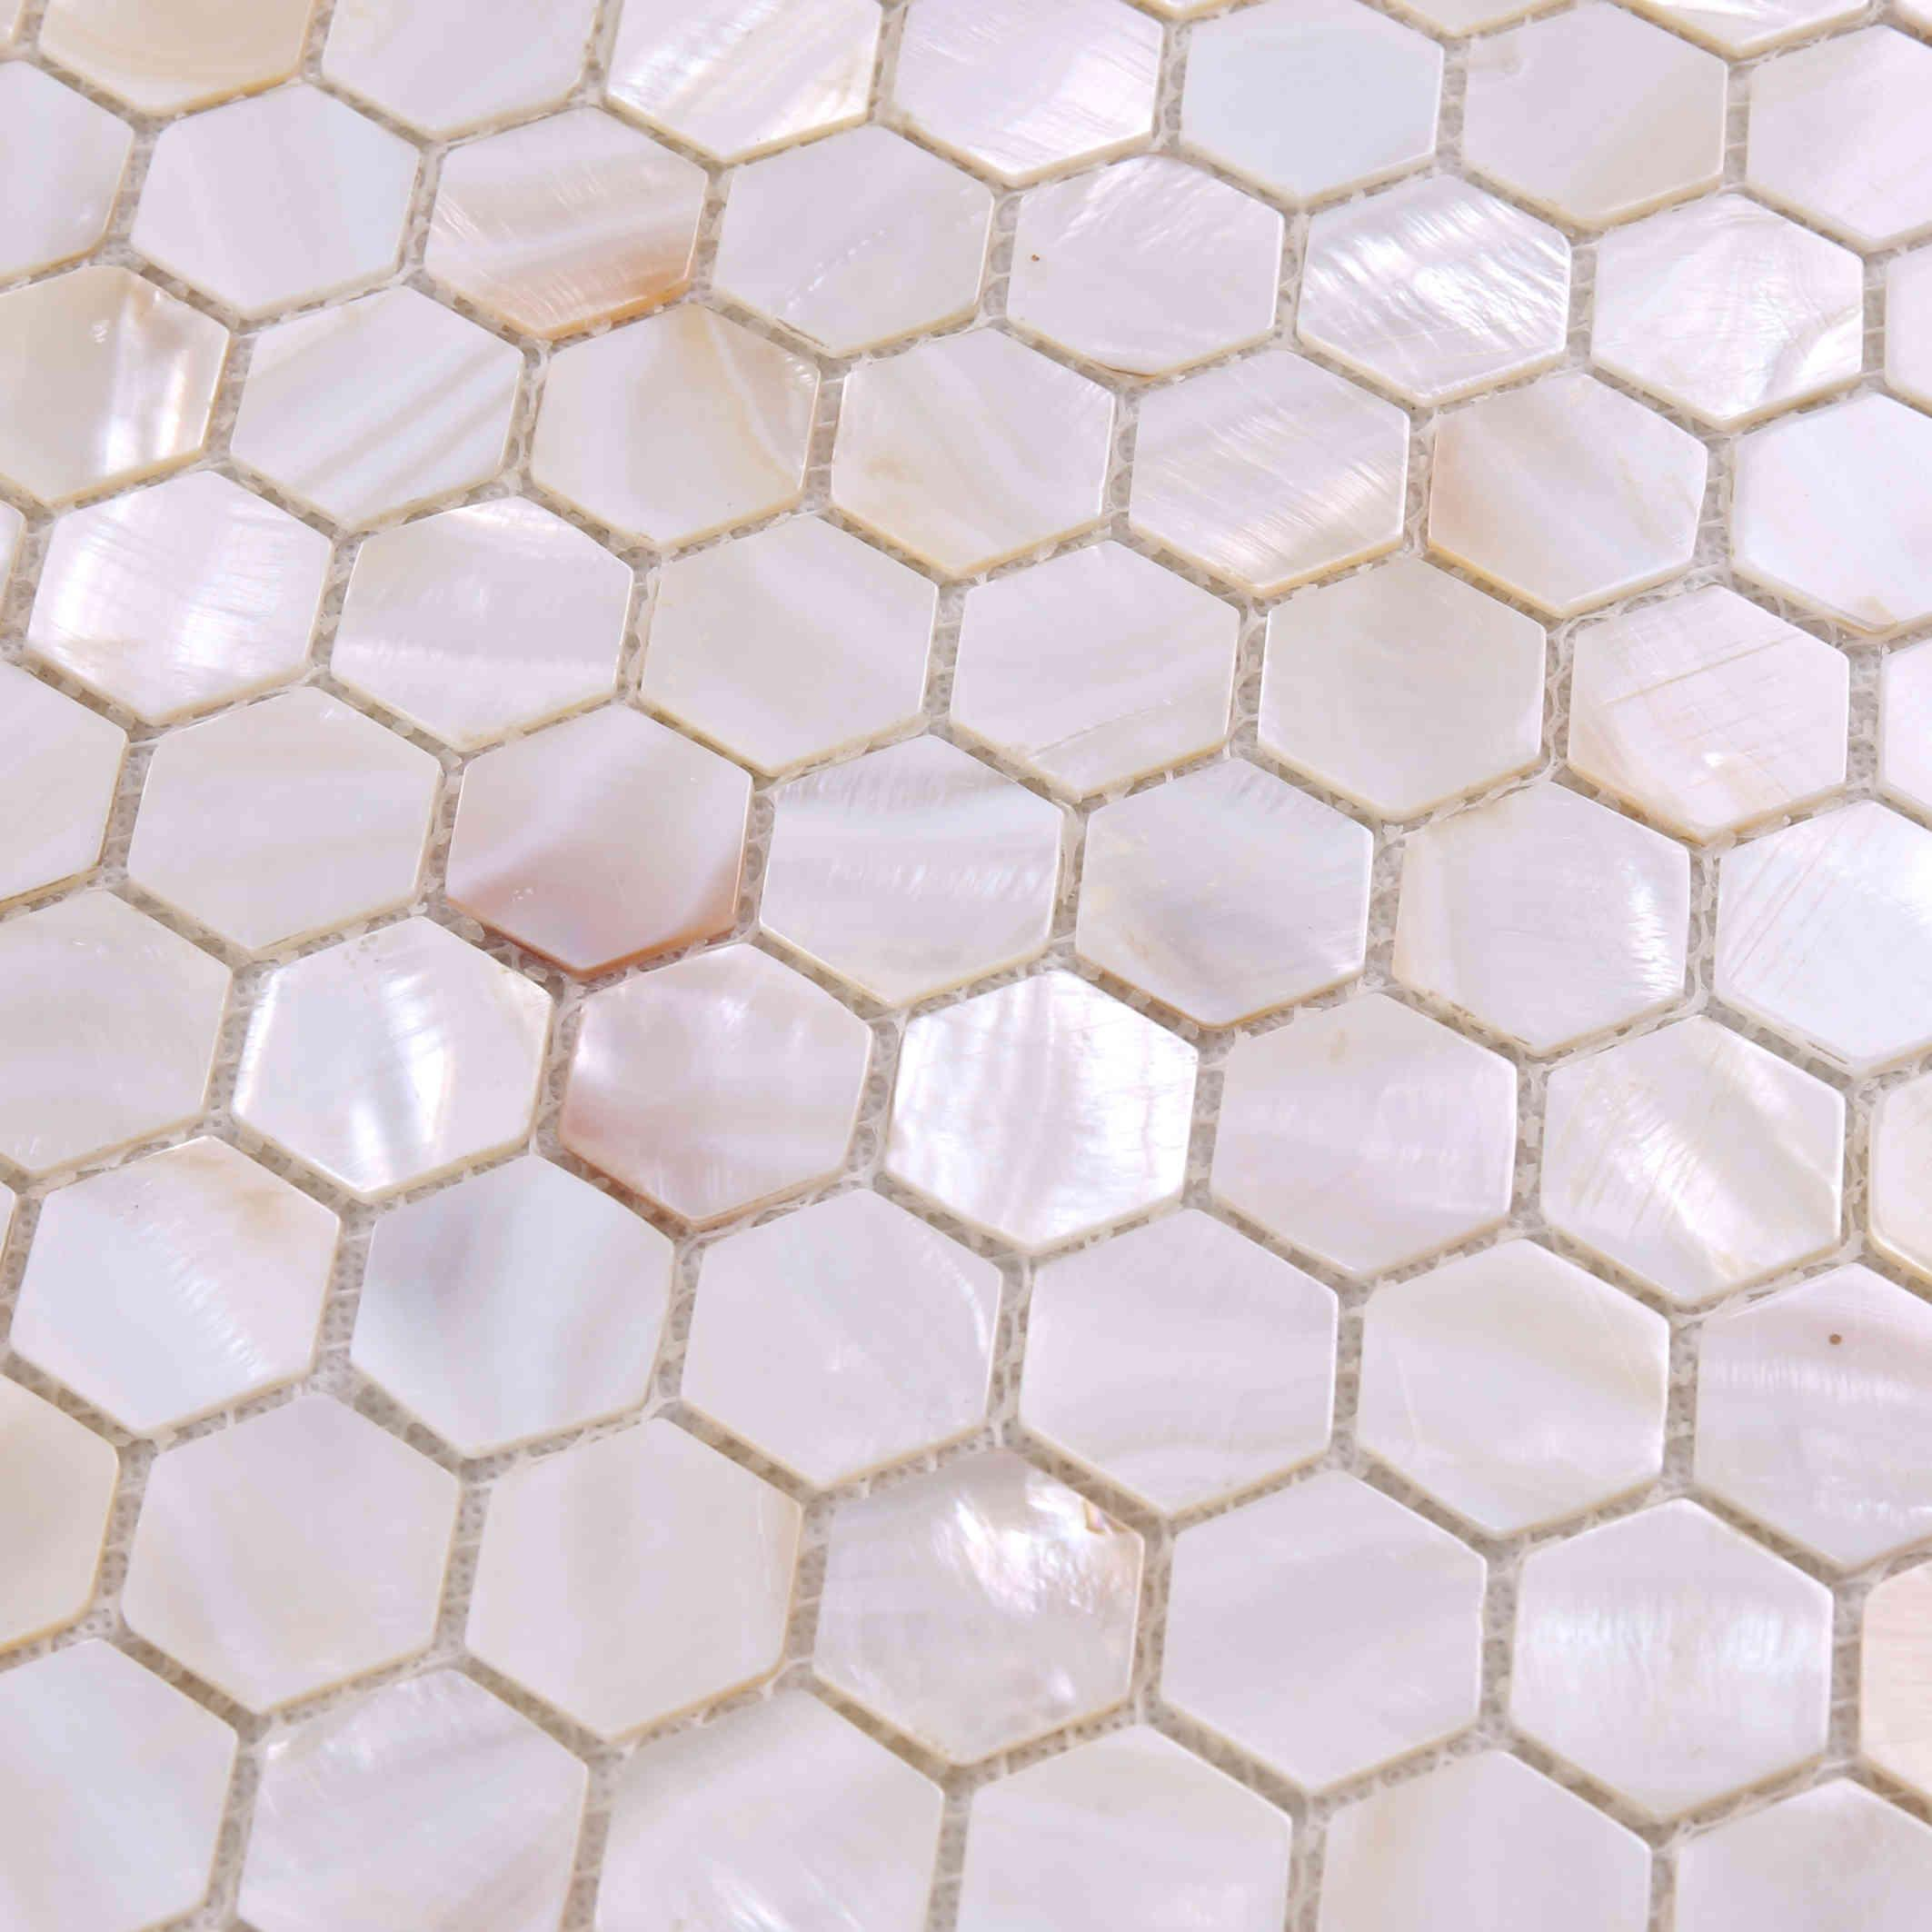 Heng Xing High-quality shell mosaic Suppliers-4